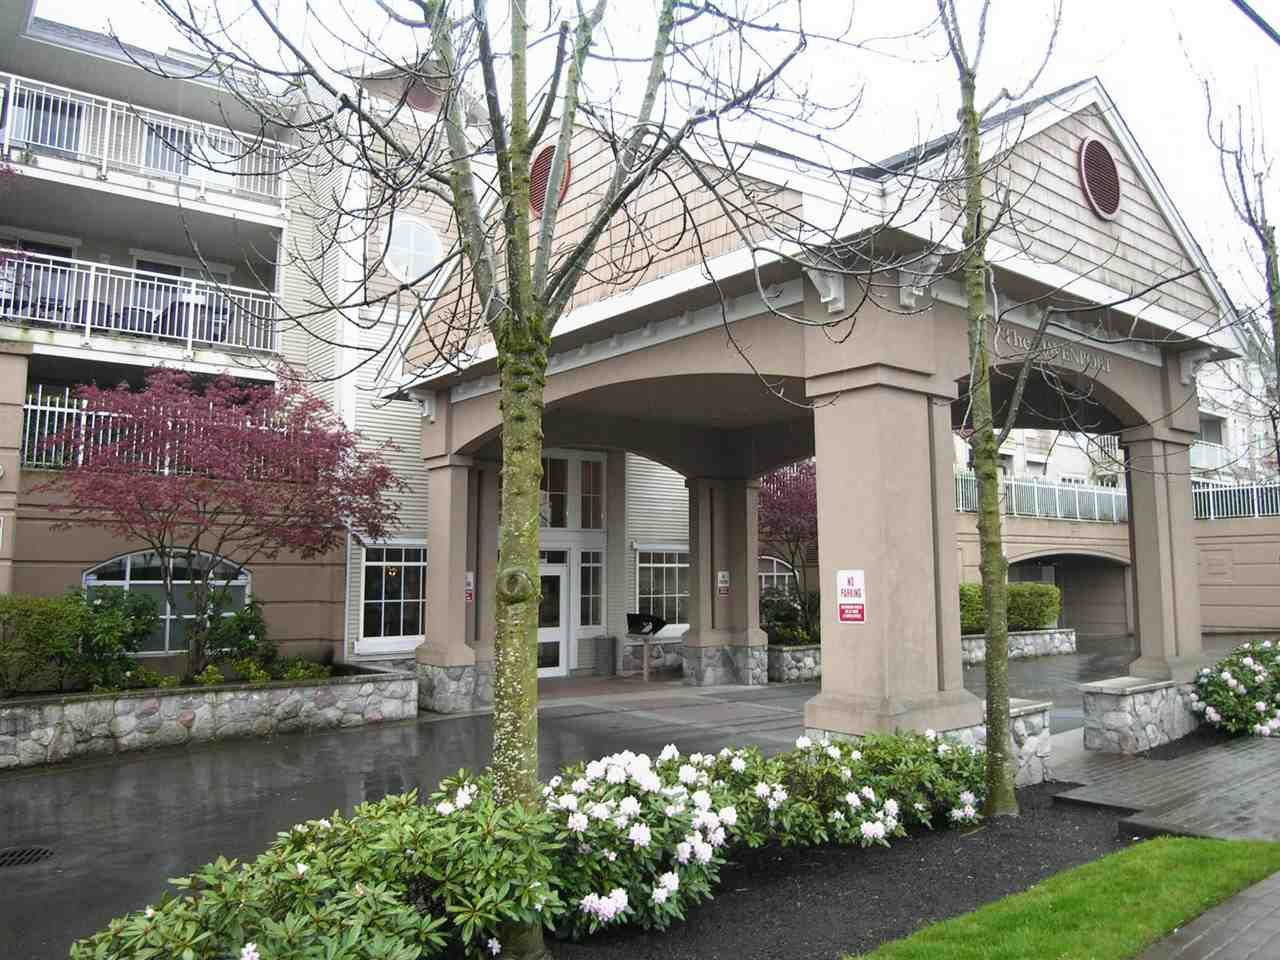 """Main Photo: 329 19750 64 Avenue in Langley: Willoughby Heights Condo for sale in """"Davenport"""" : MLS®# R2352435"""